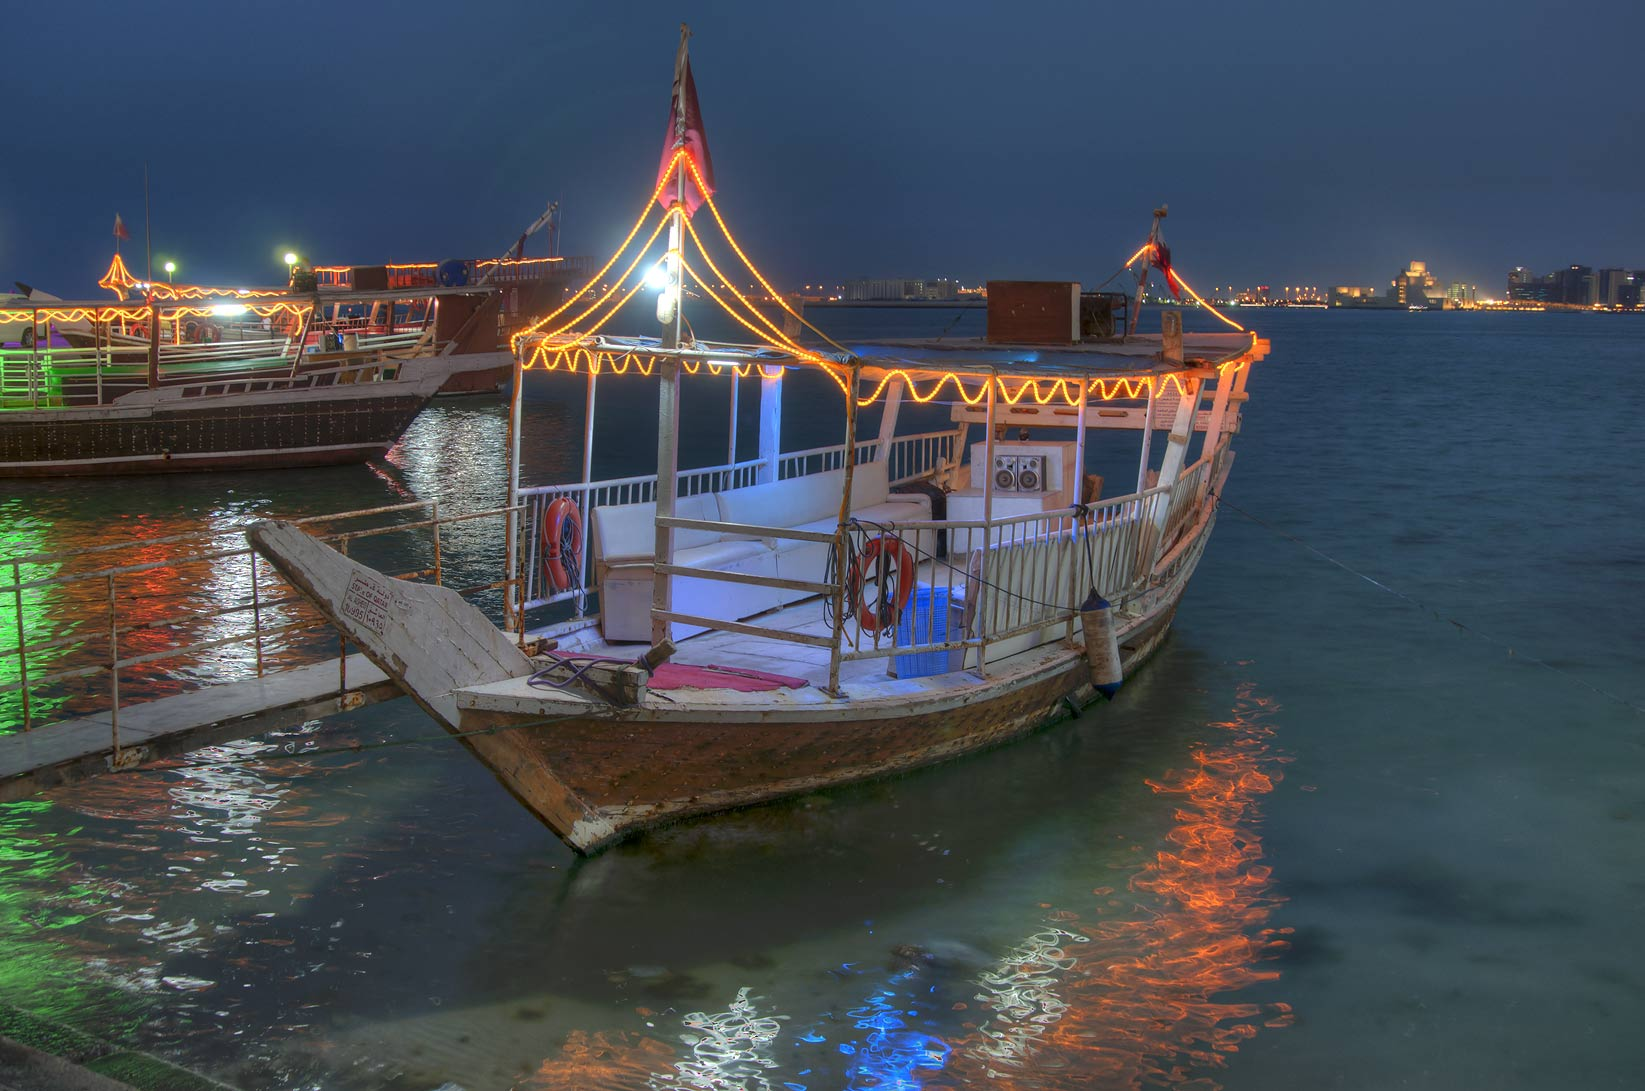 Dhow traditional fishing boat docked at Corniche...promenade) at evening. Doha, Qatar